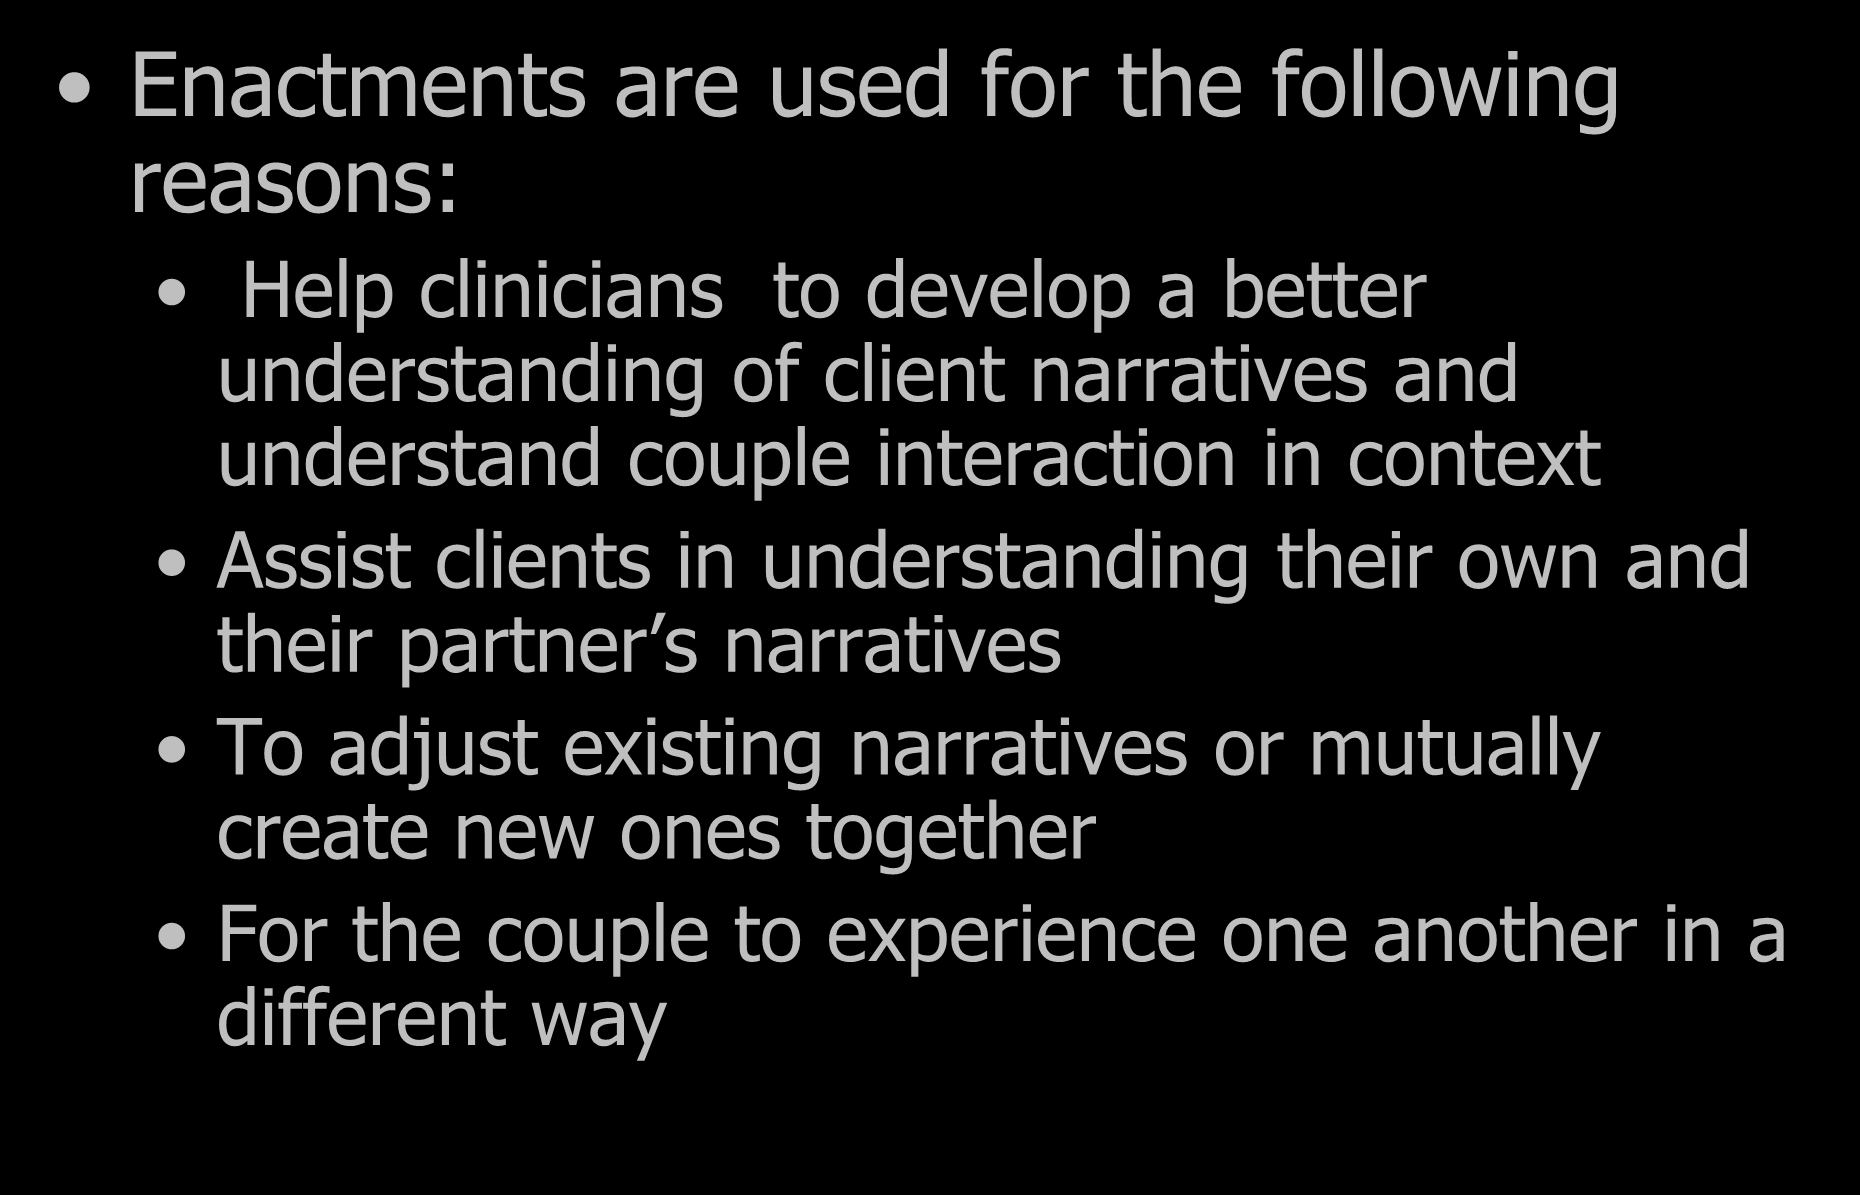 Enactments Enactments are used for the following reasons: Help clinicians to develop a better understanding of client narratives and understand couple interaction in context Assist